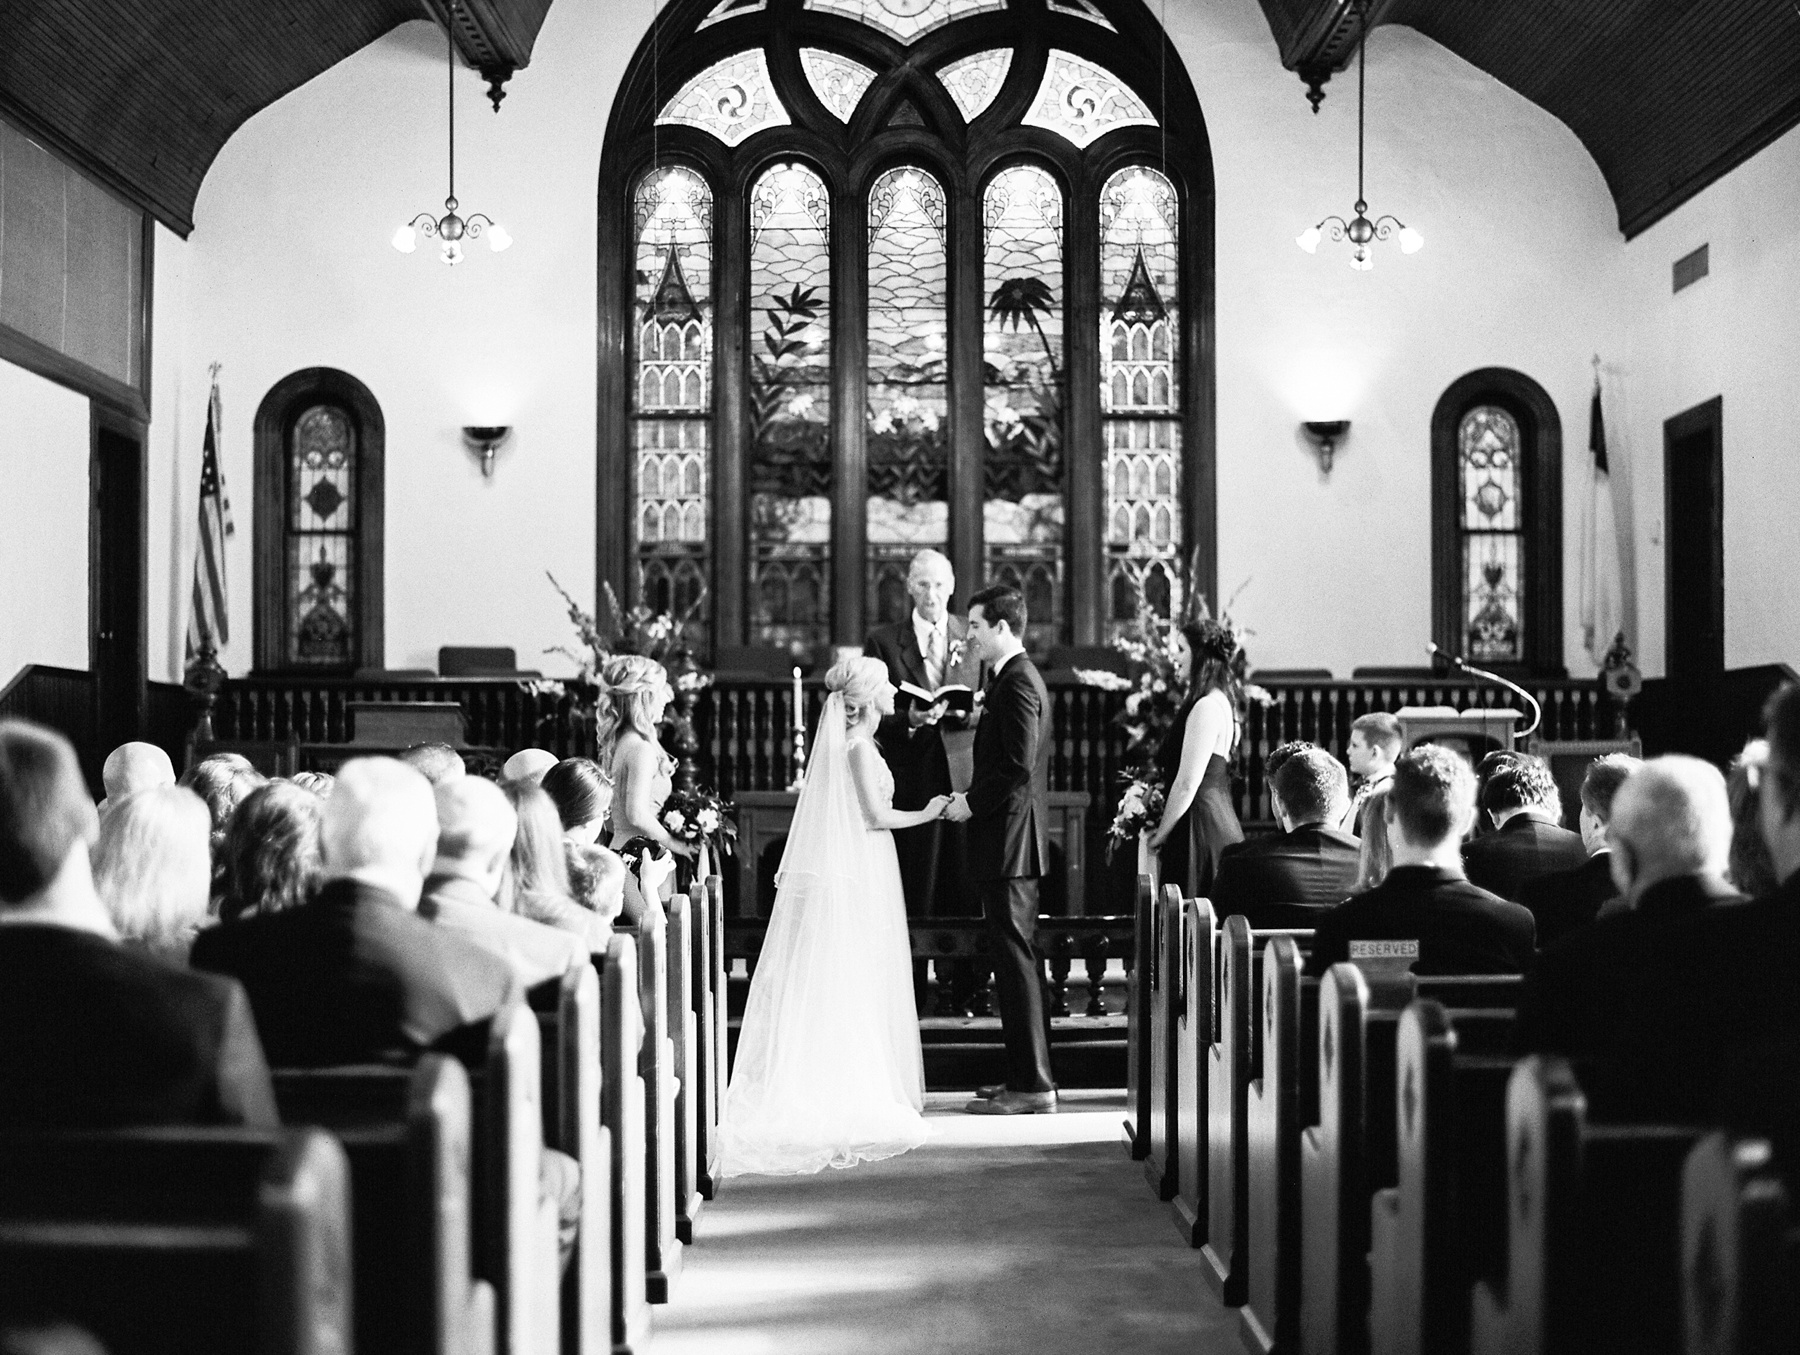 Tenessee-Wedding-Photographer-Stratton-House_0231.jpg